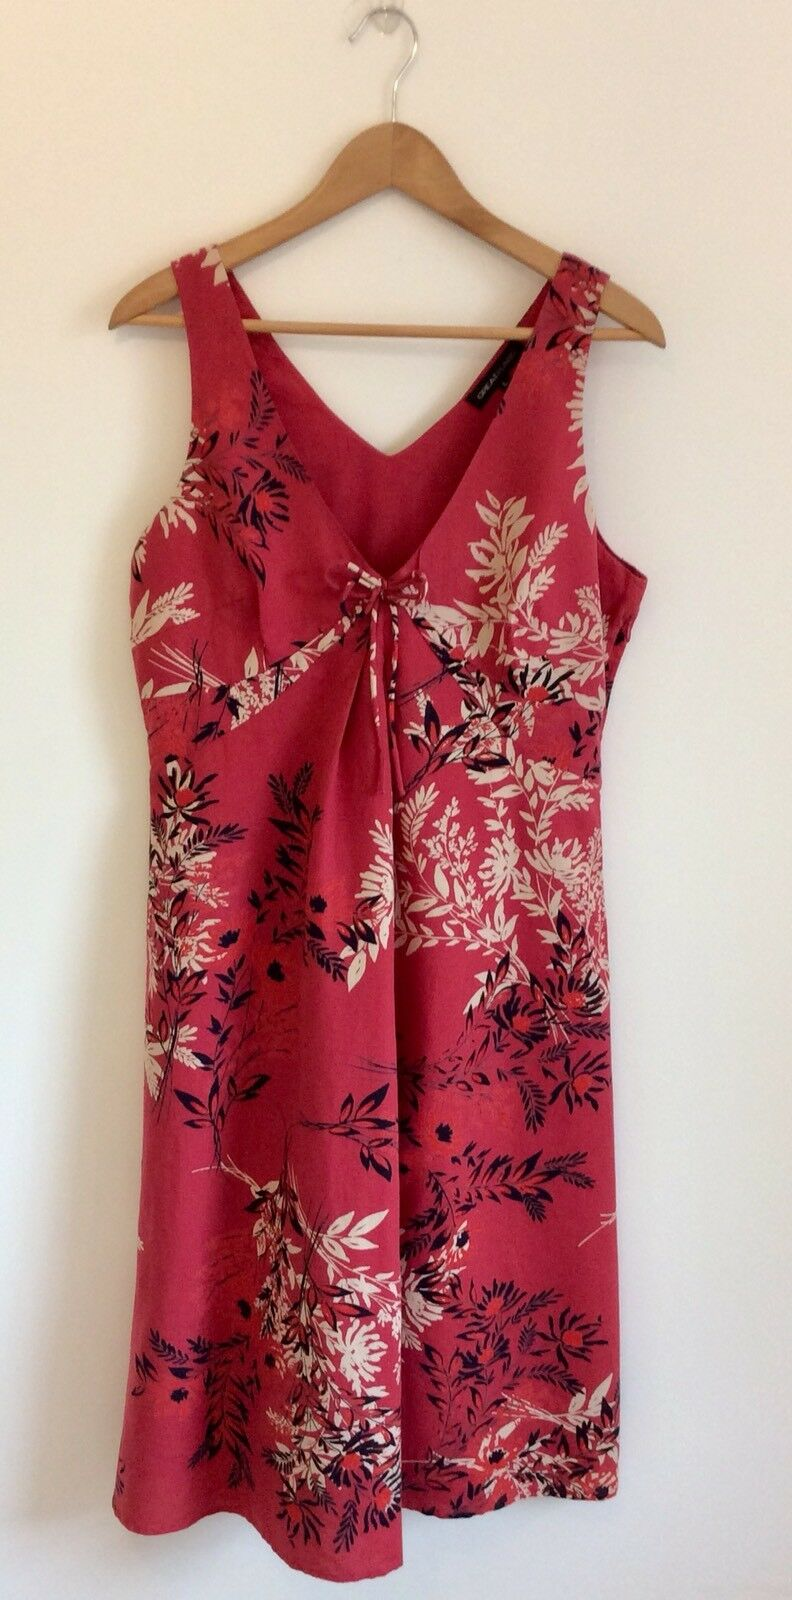 Great Plains Summer Floral Print Linen Cotton Red Ivory Black Sleeveless Dress L